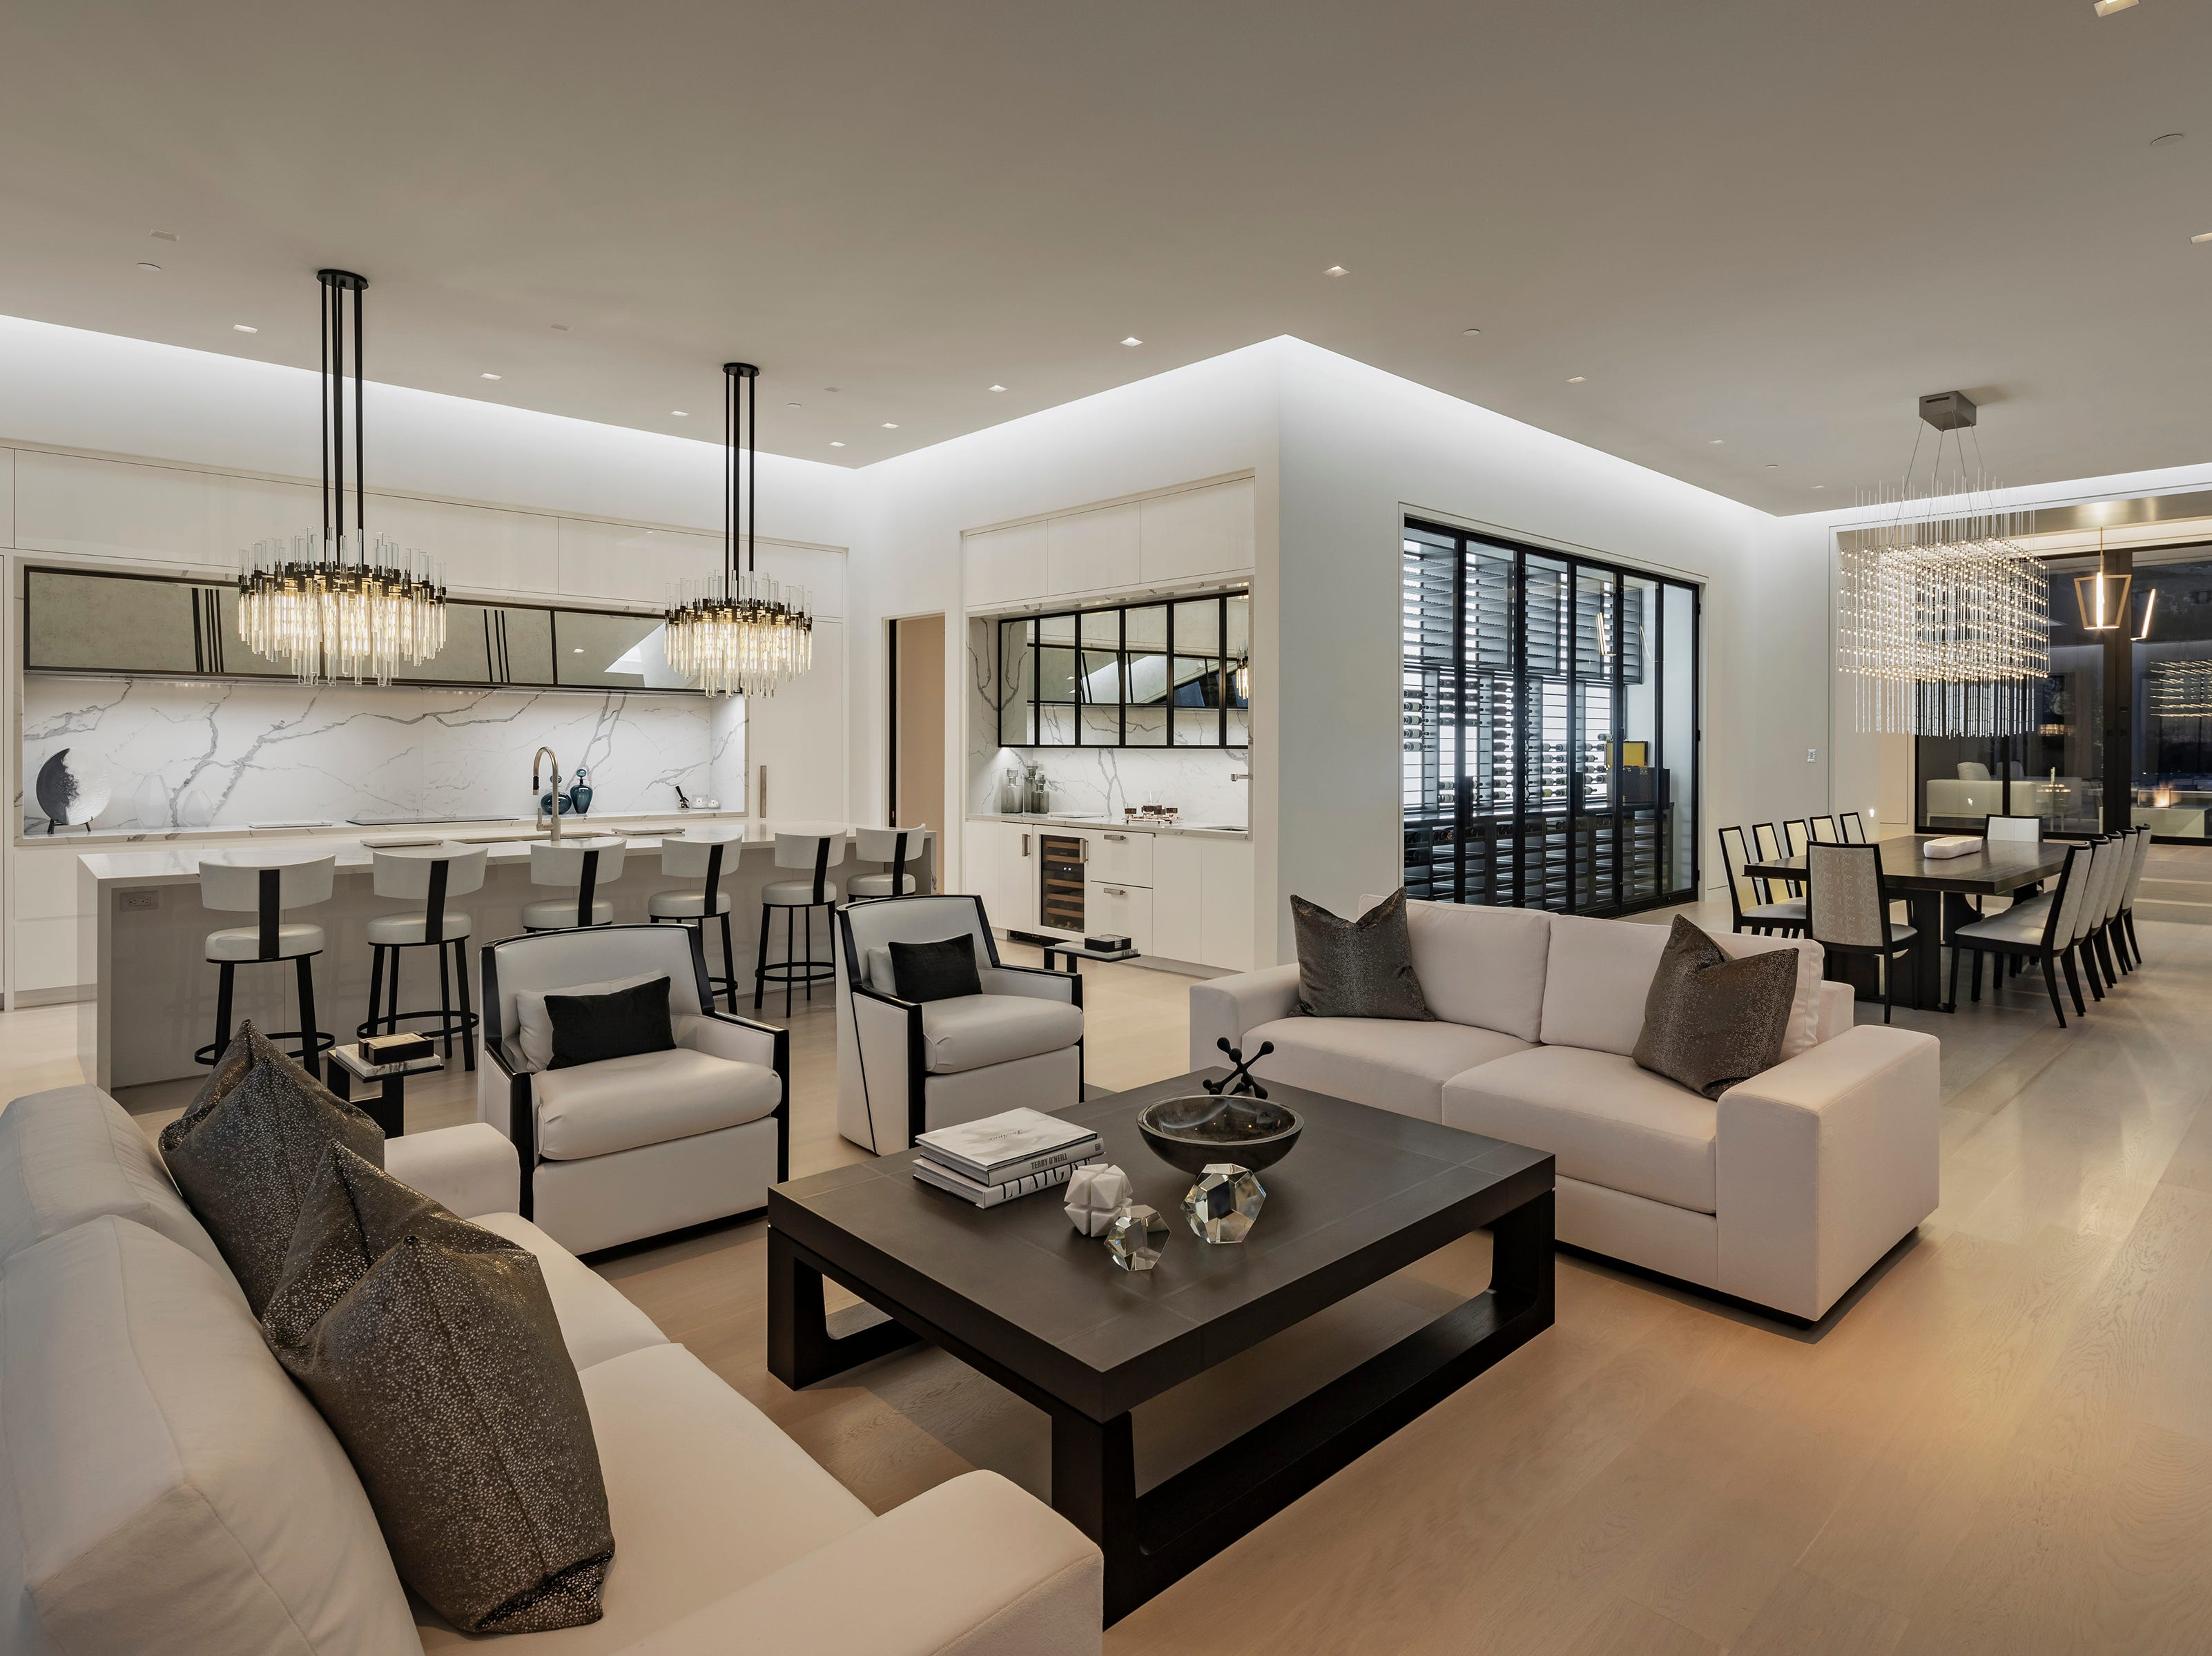 The home was recently renovated by its owners, billionaire oilman and Portland Winterhawks hockey team owner William Gallacher and Joanne Stansfield.